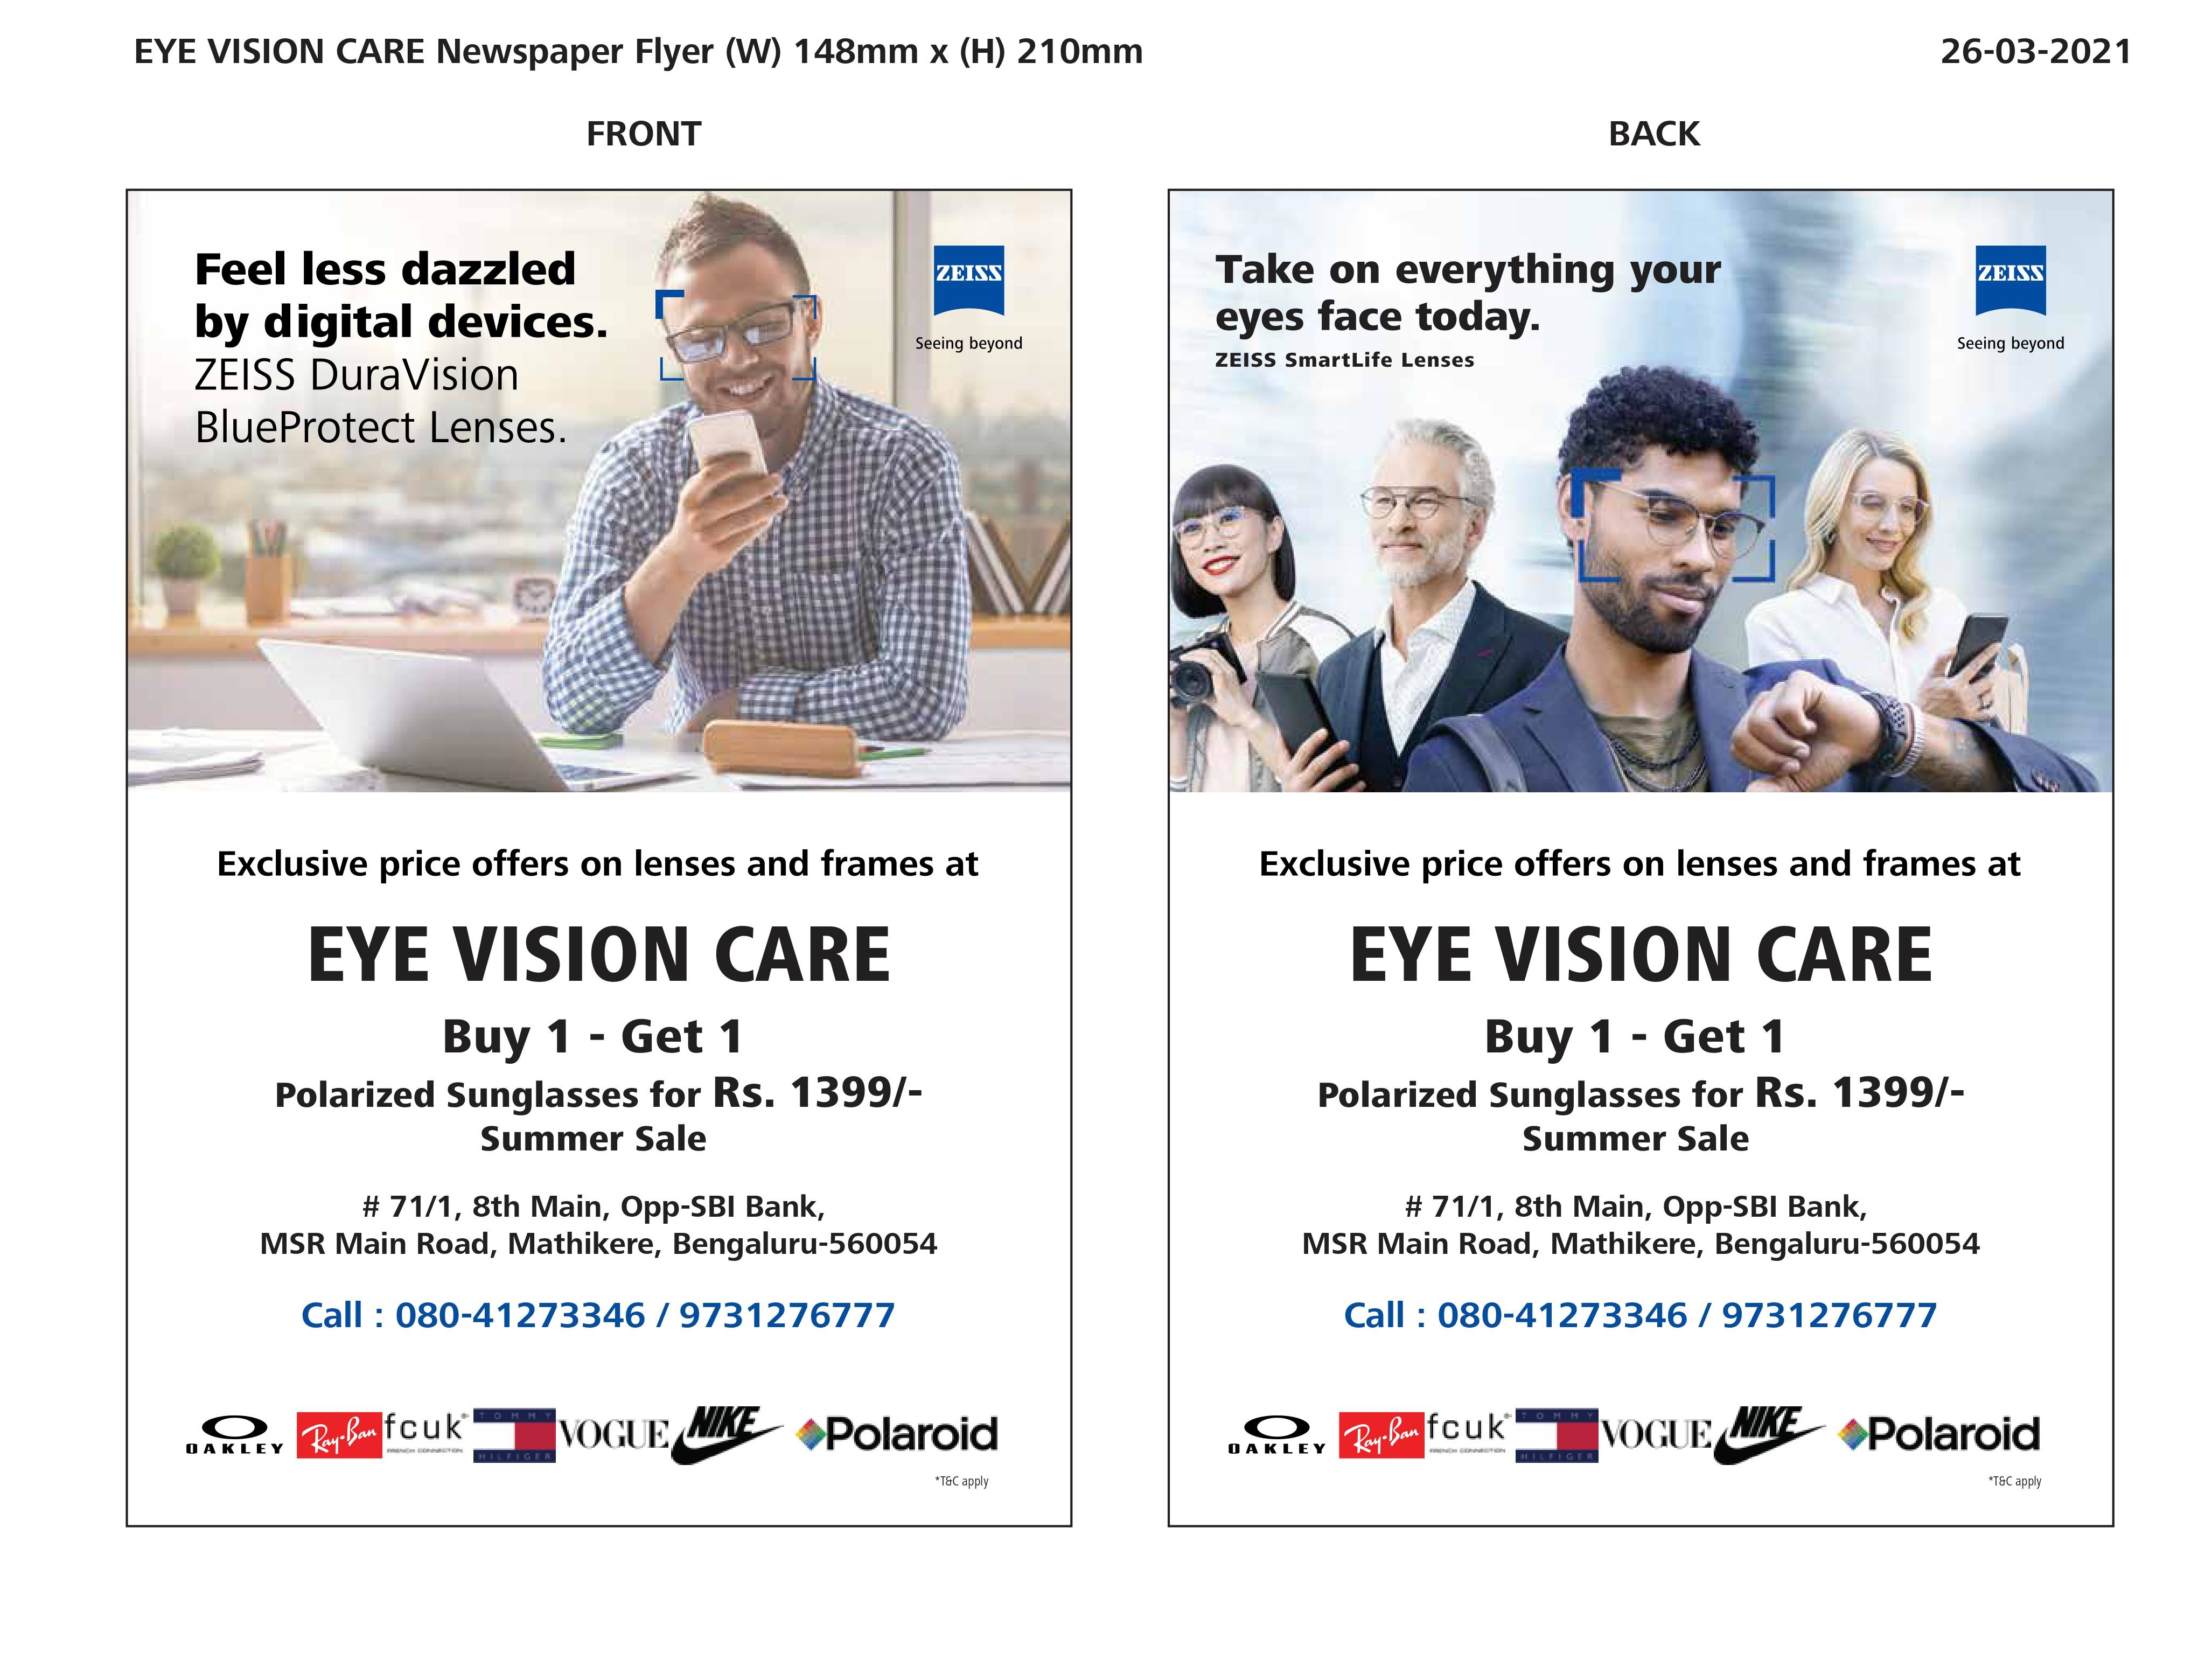 Carl Zeiss India | Eye Vision Care